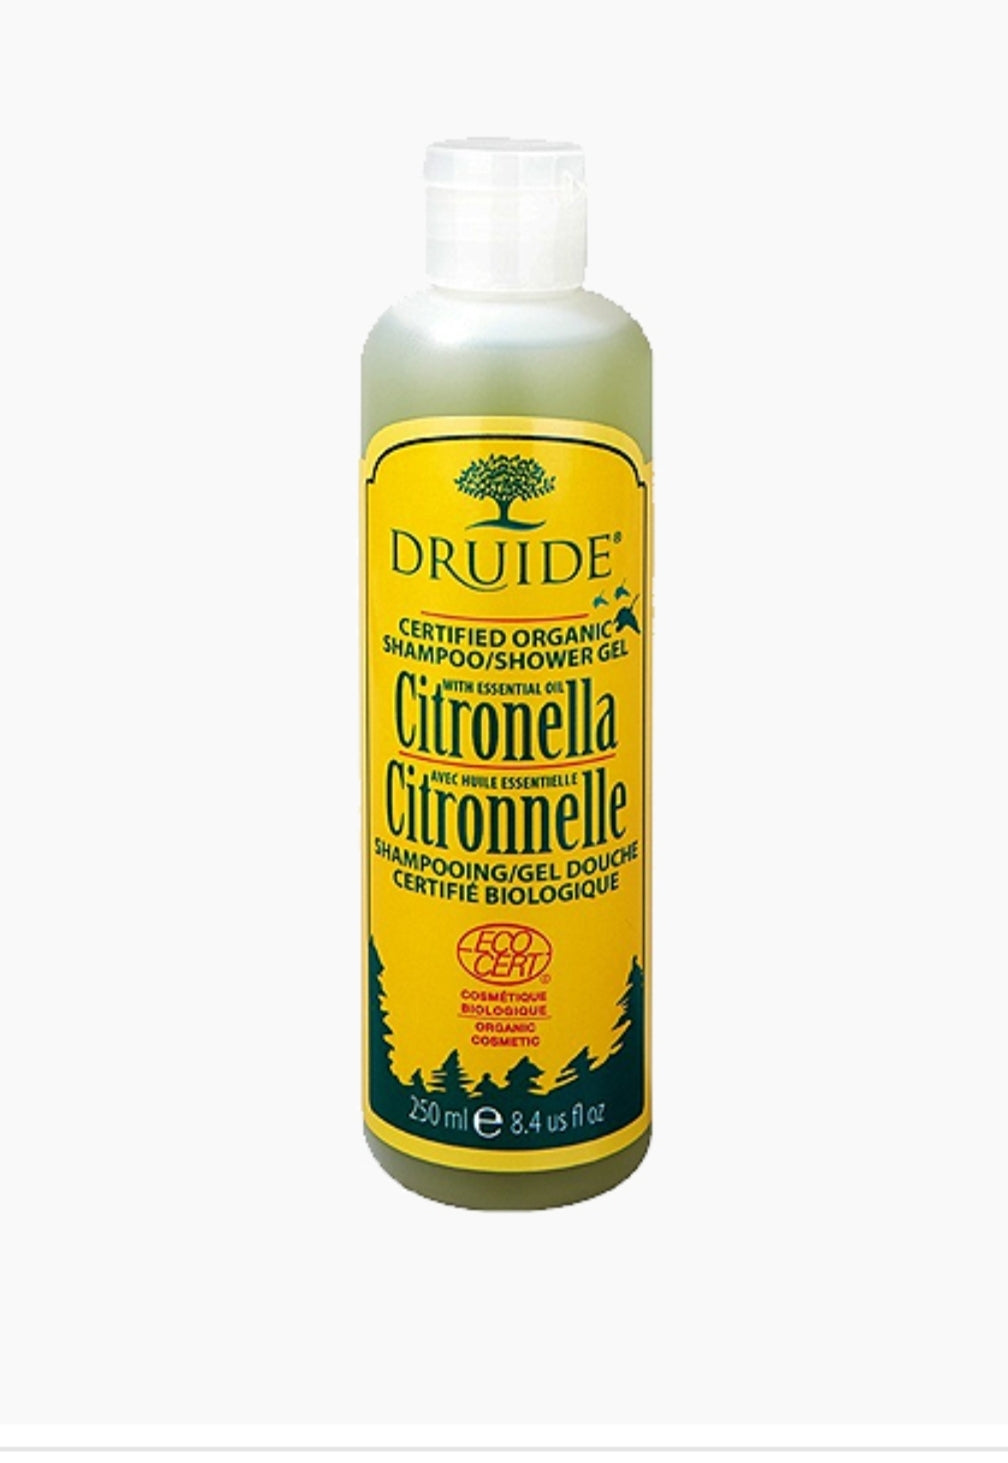 Citronella Shampoo / Shower Gel